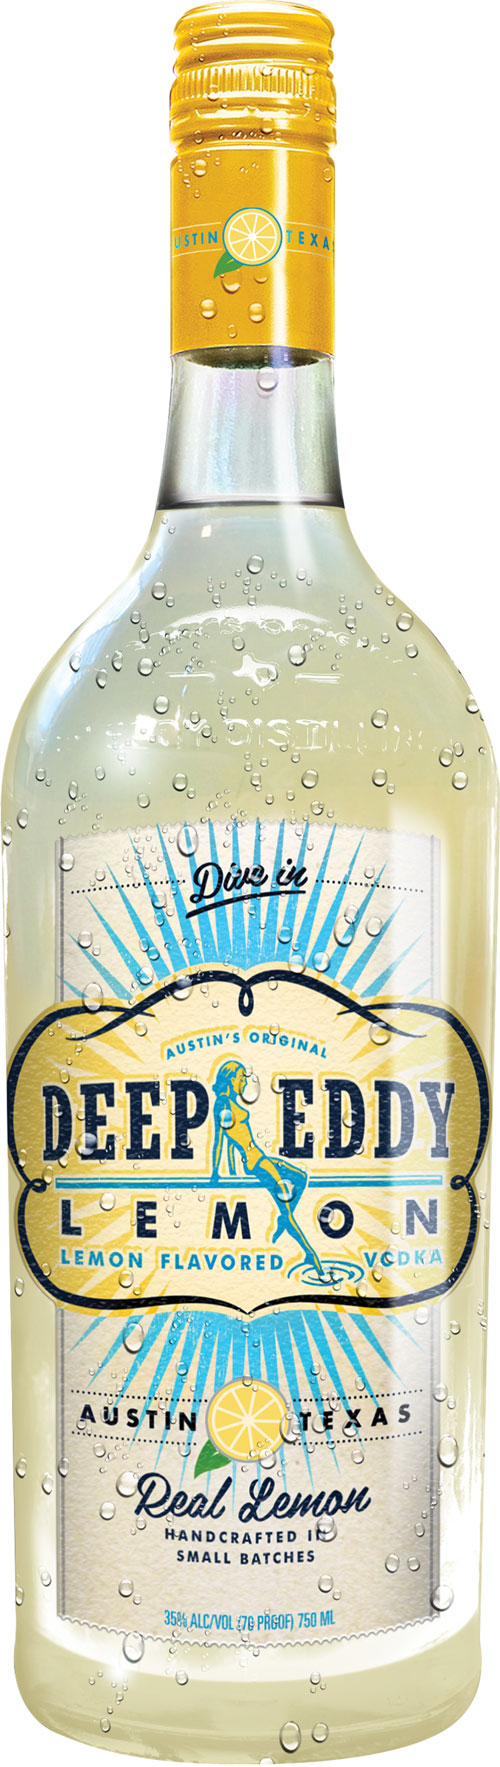 Deep Eddy Lemon Vodka - CaskCartel.com